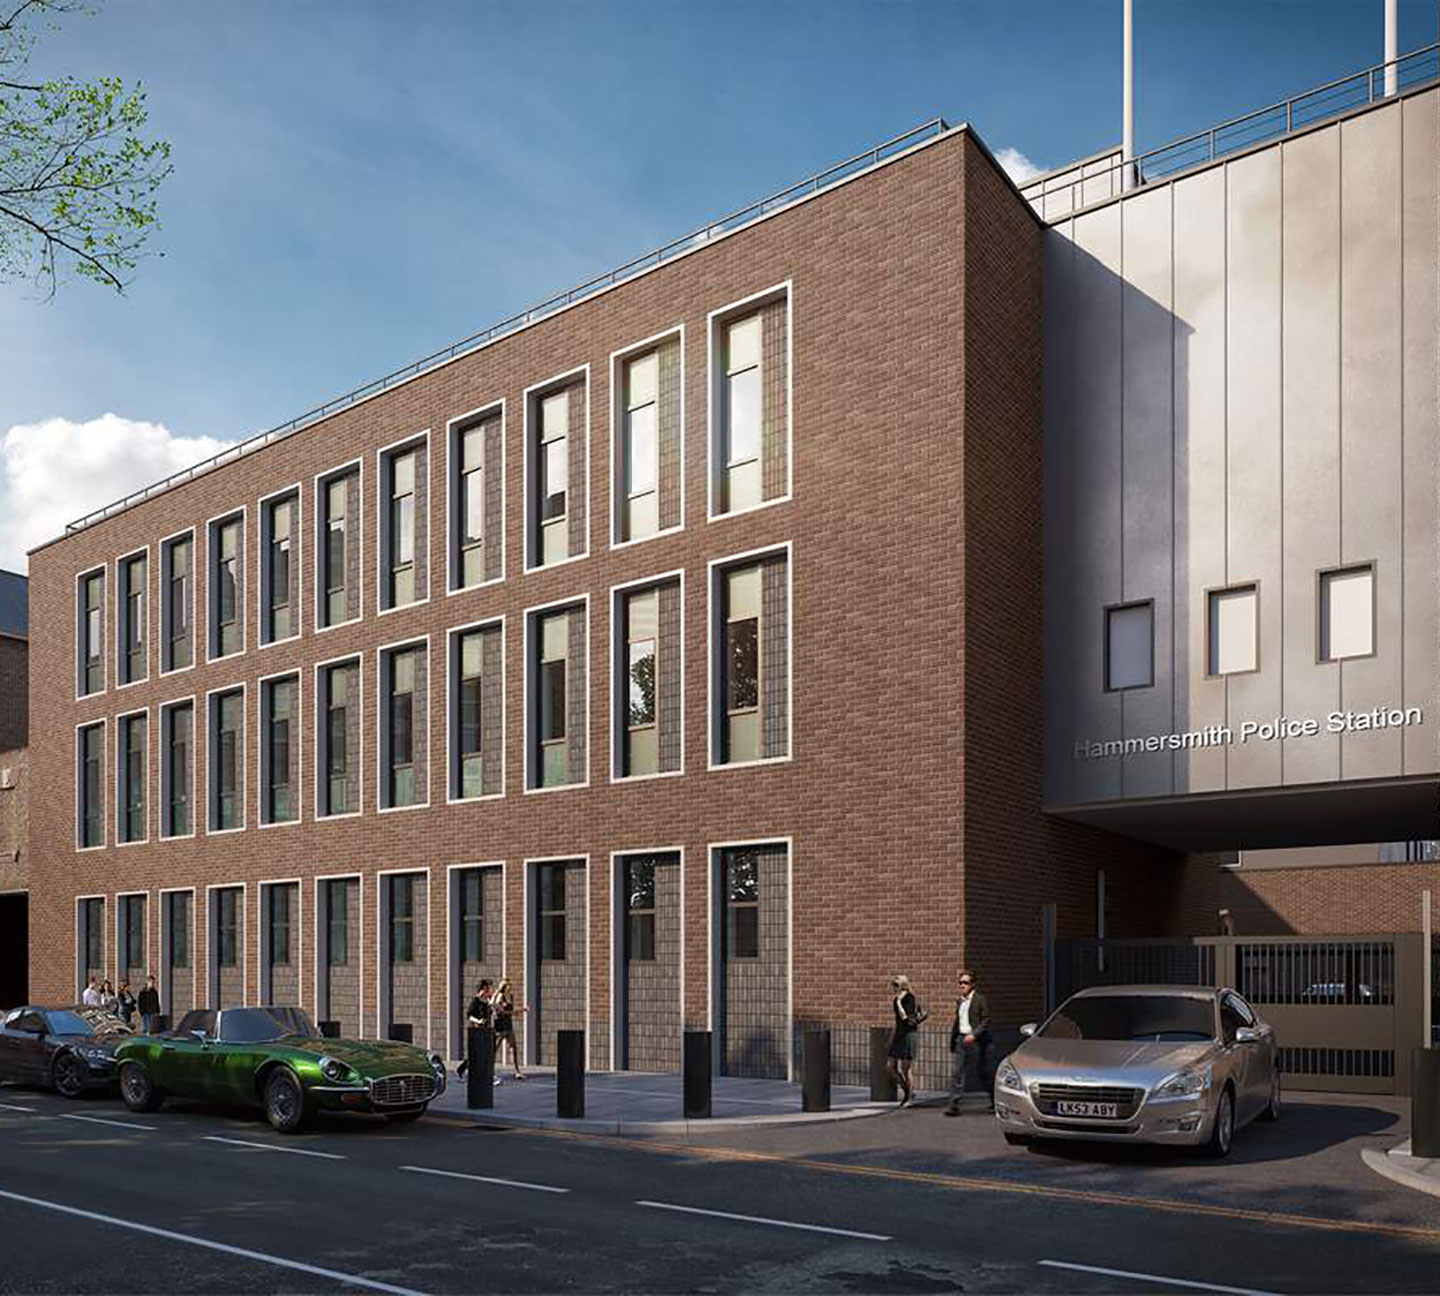 Wates Group: Hammersmith Police Station